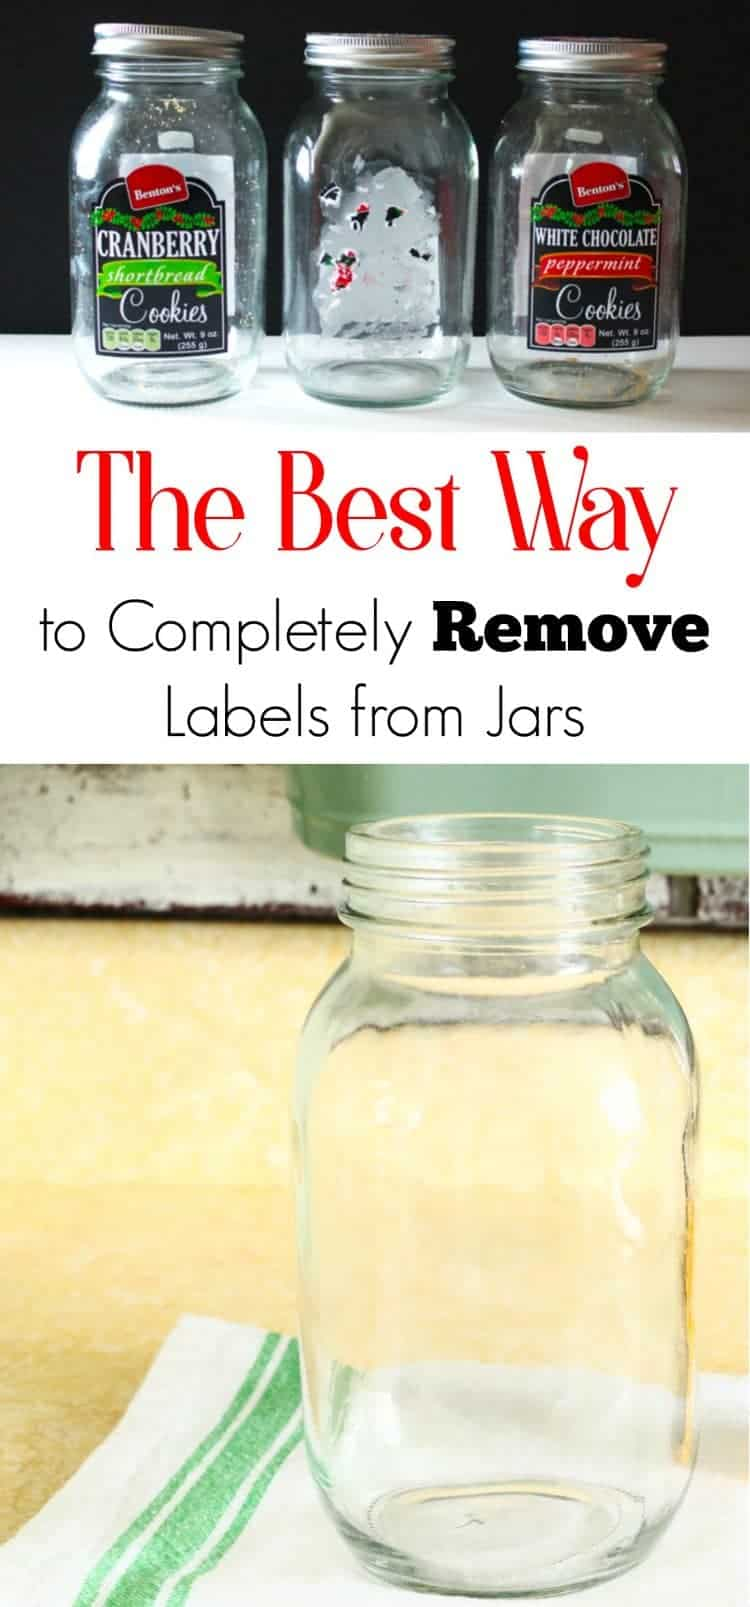 The absolute best and easiest way to remove label glue from glass jars. Reuse, repurpose and recycle with style!